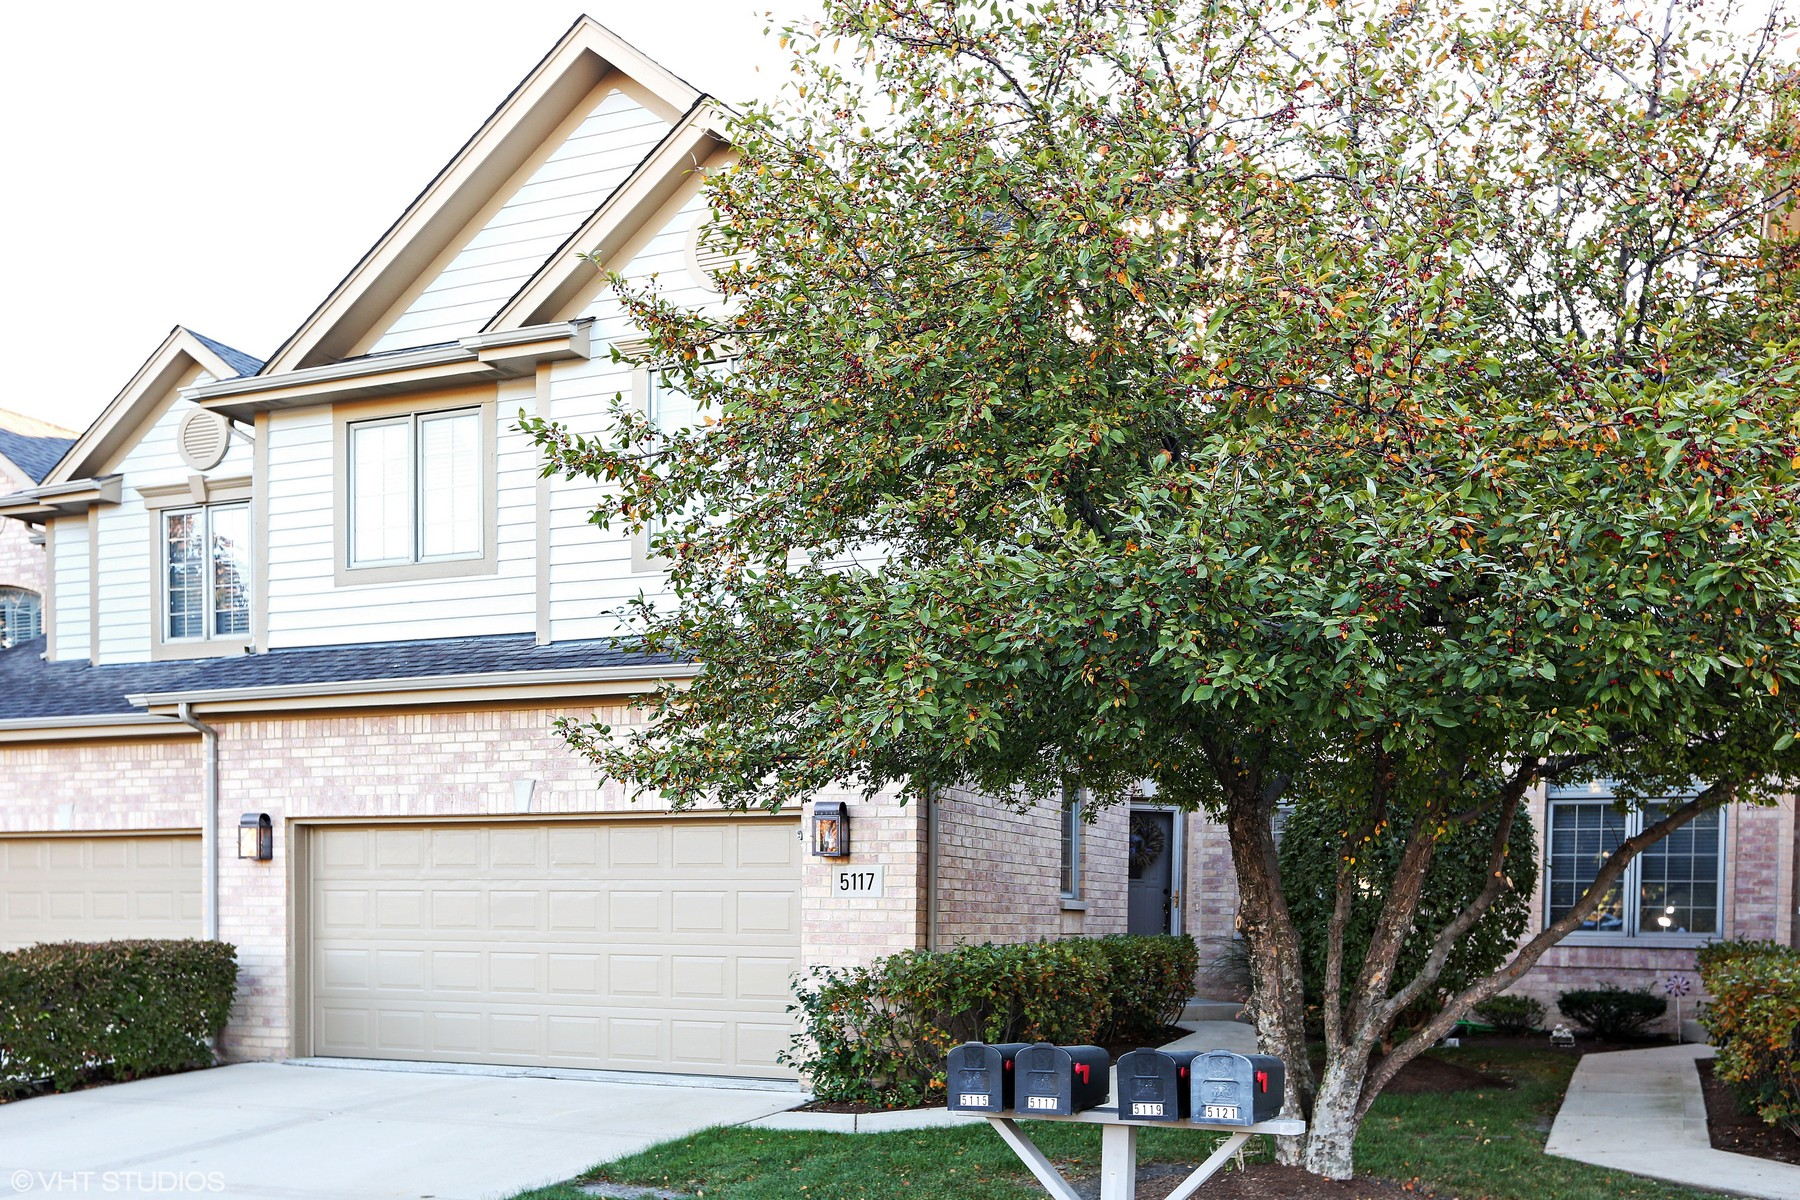 Townhouse for Sale at Creek Drive 5117 Creek Drive Western Springs, Illinois, 60558 United States